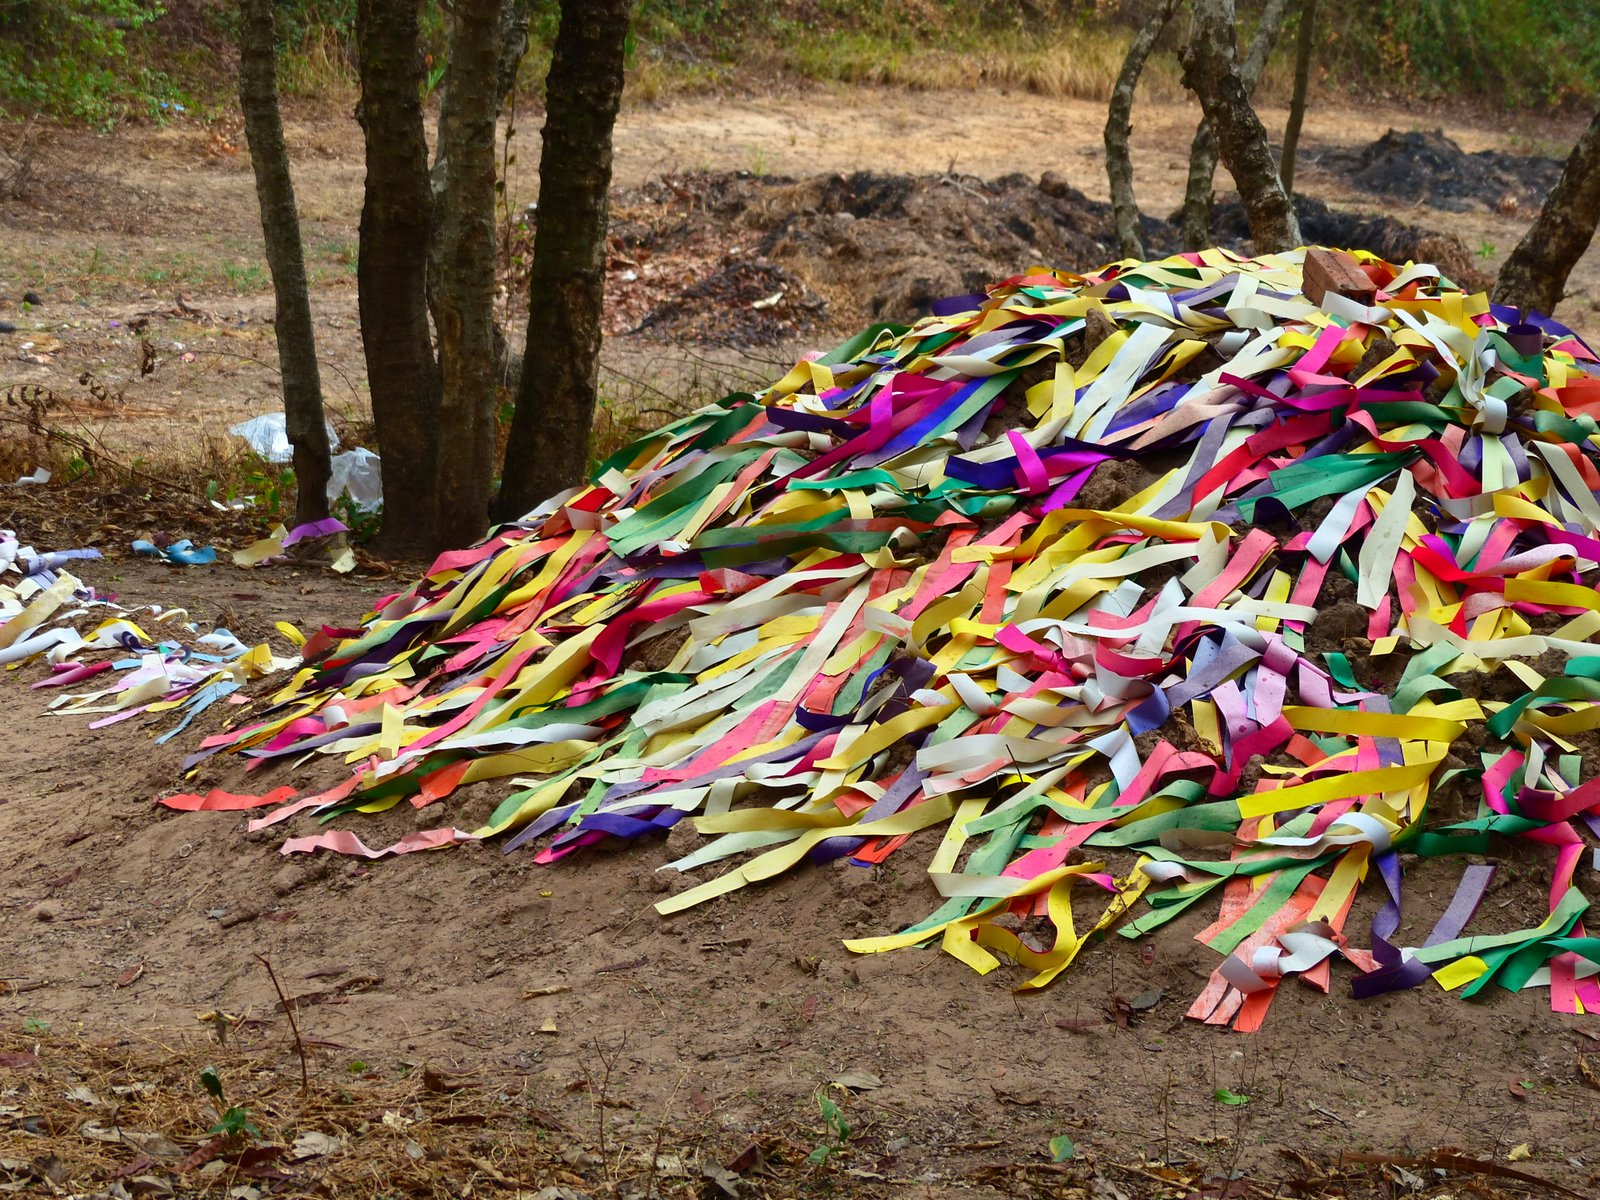 An unexcavated mass grave covered in brightly colored ribbons as tribute to the dead.